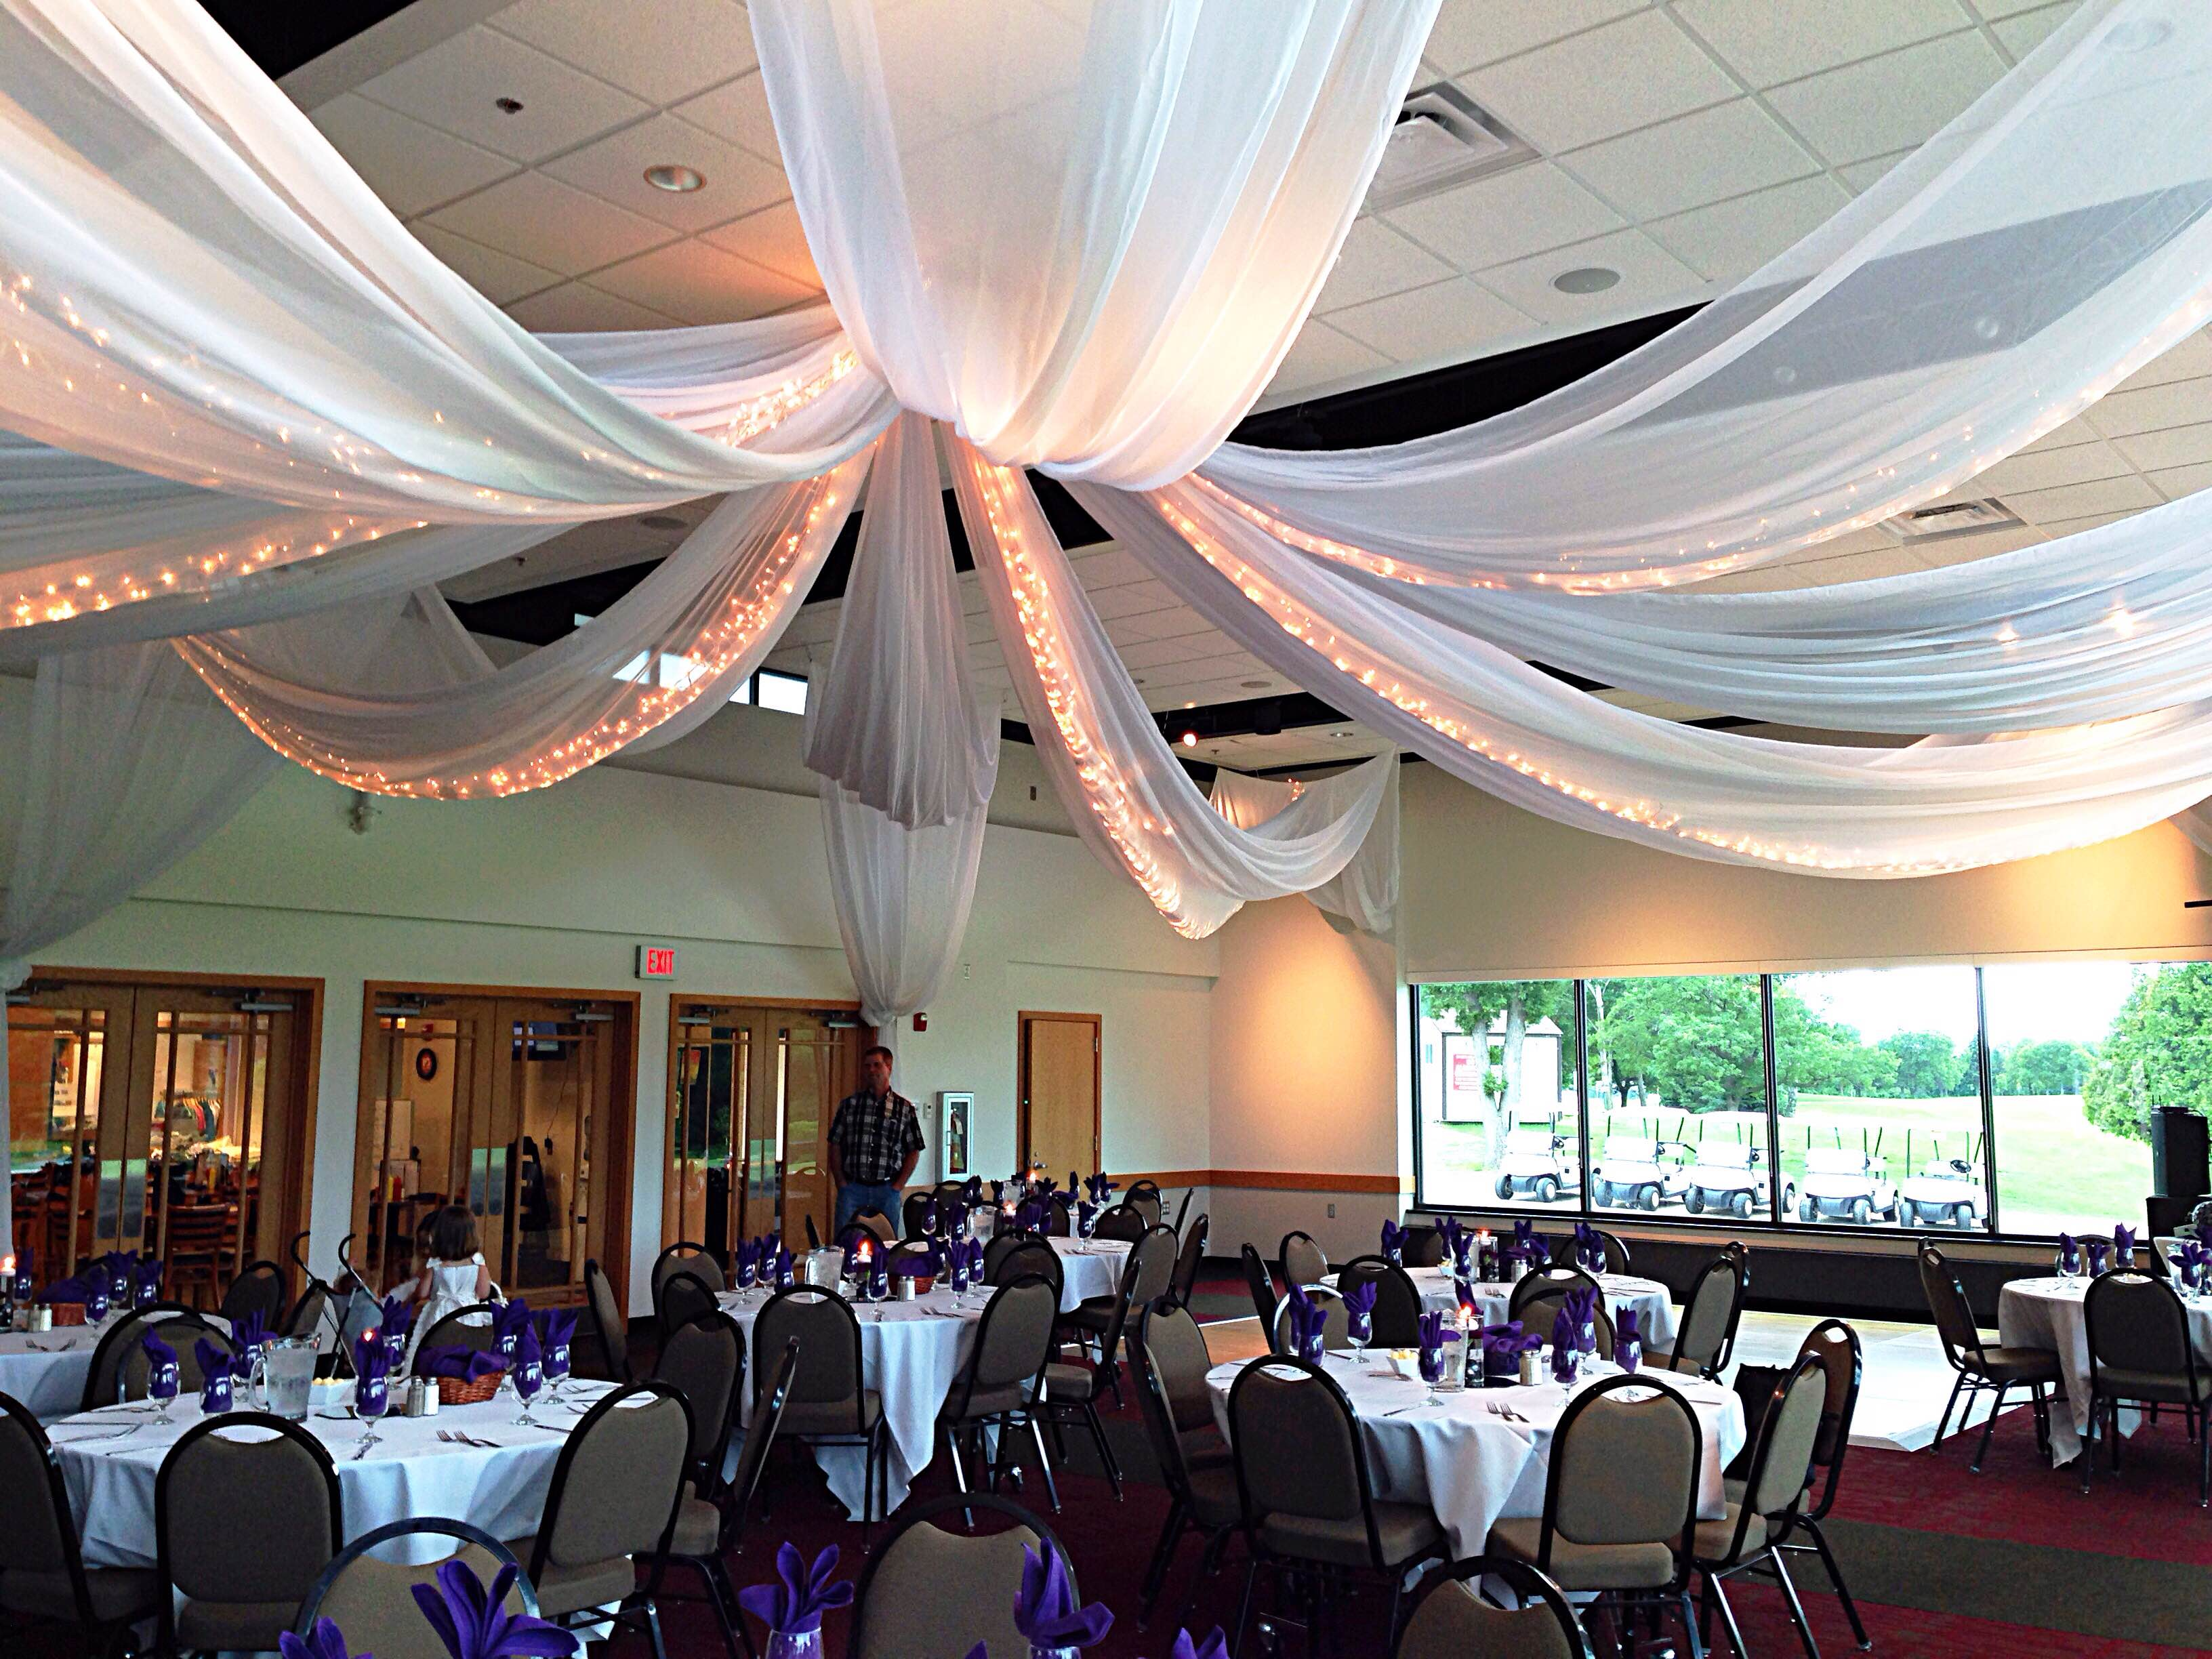 banquet tables with place settings and ceiling draperies